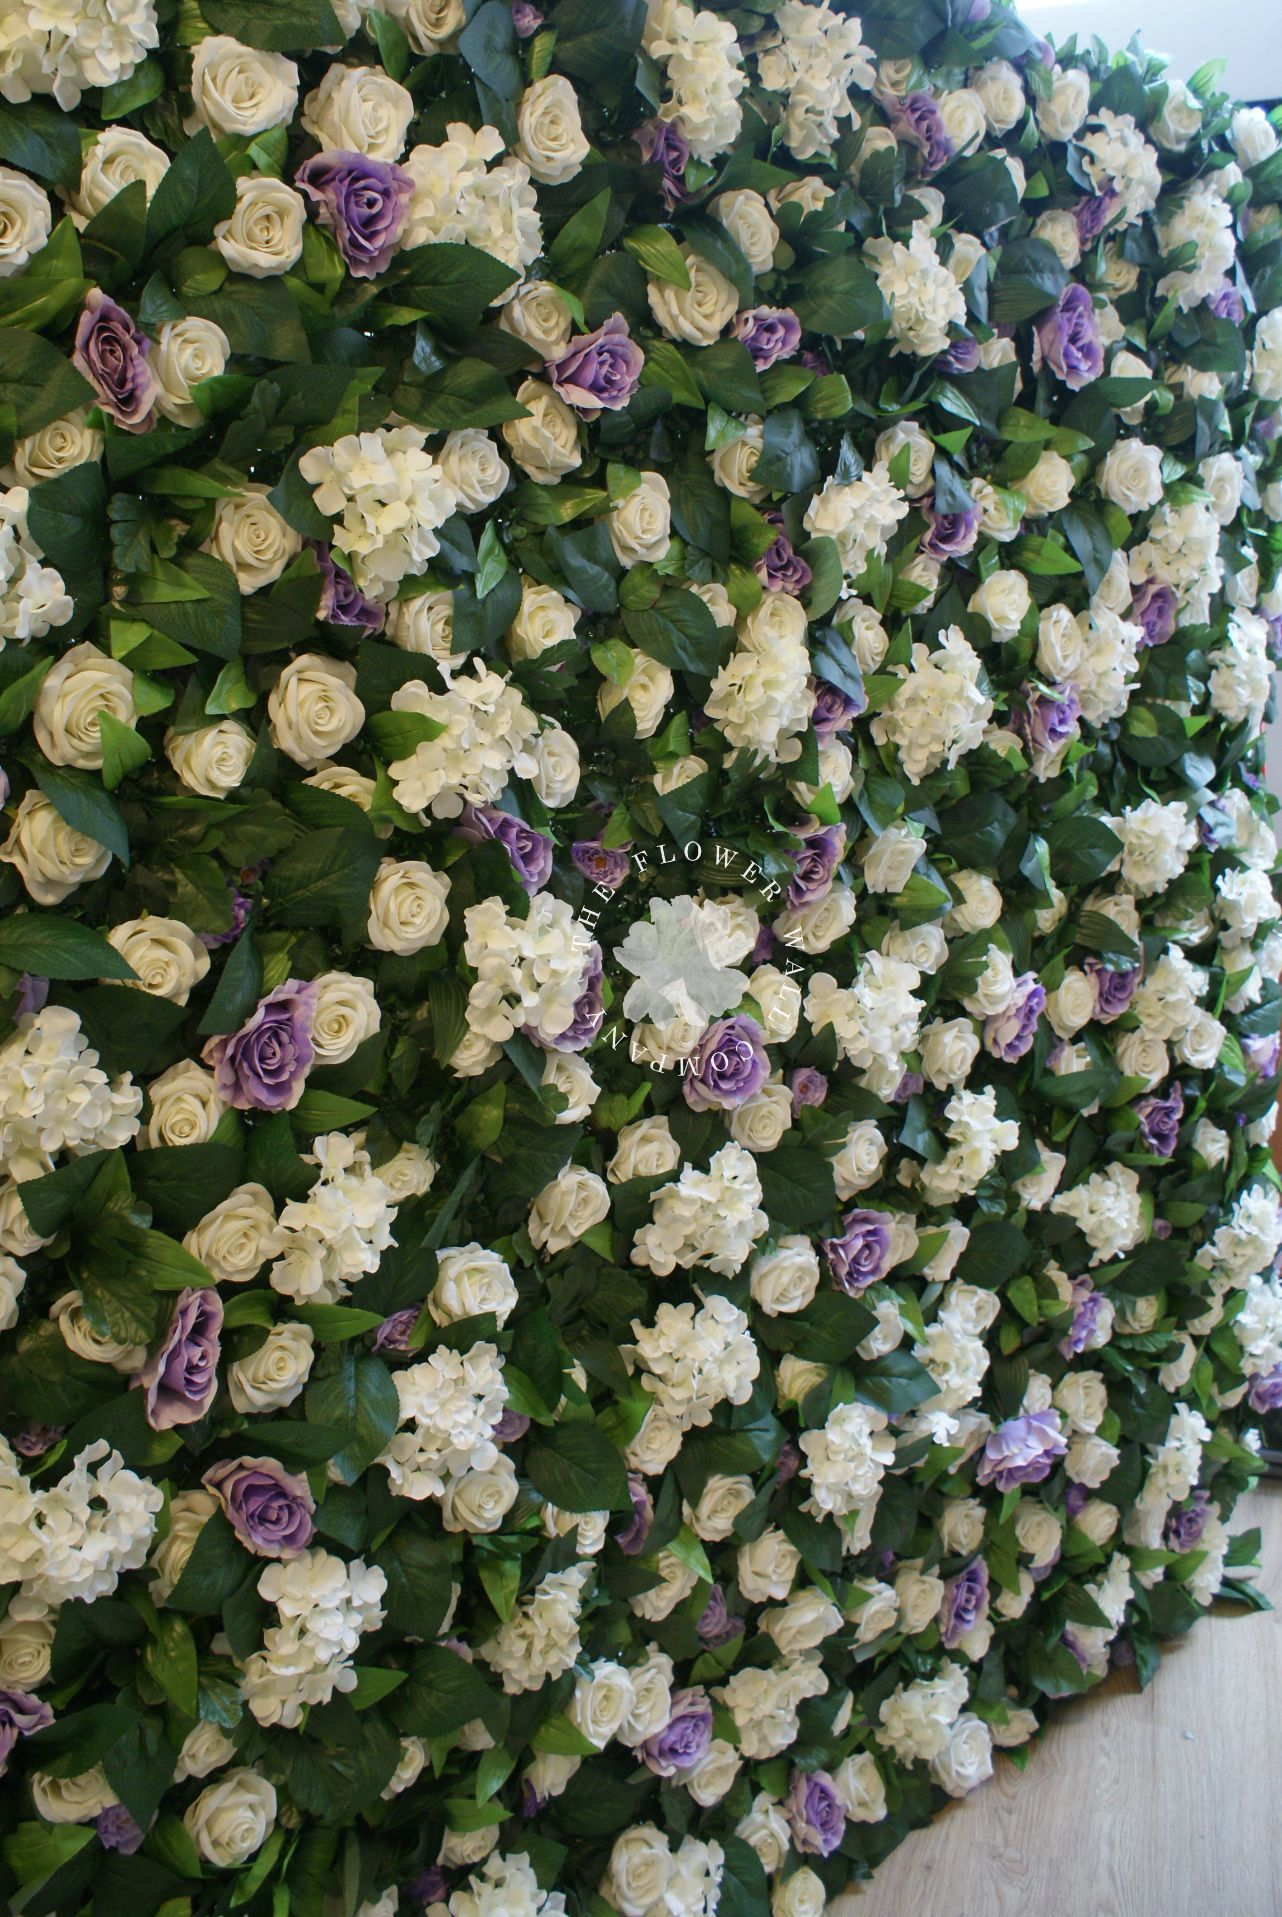 wedding backdrop Archives Page 3 of 4 The Flower Wall pany